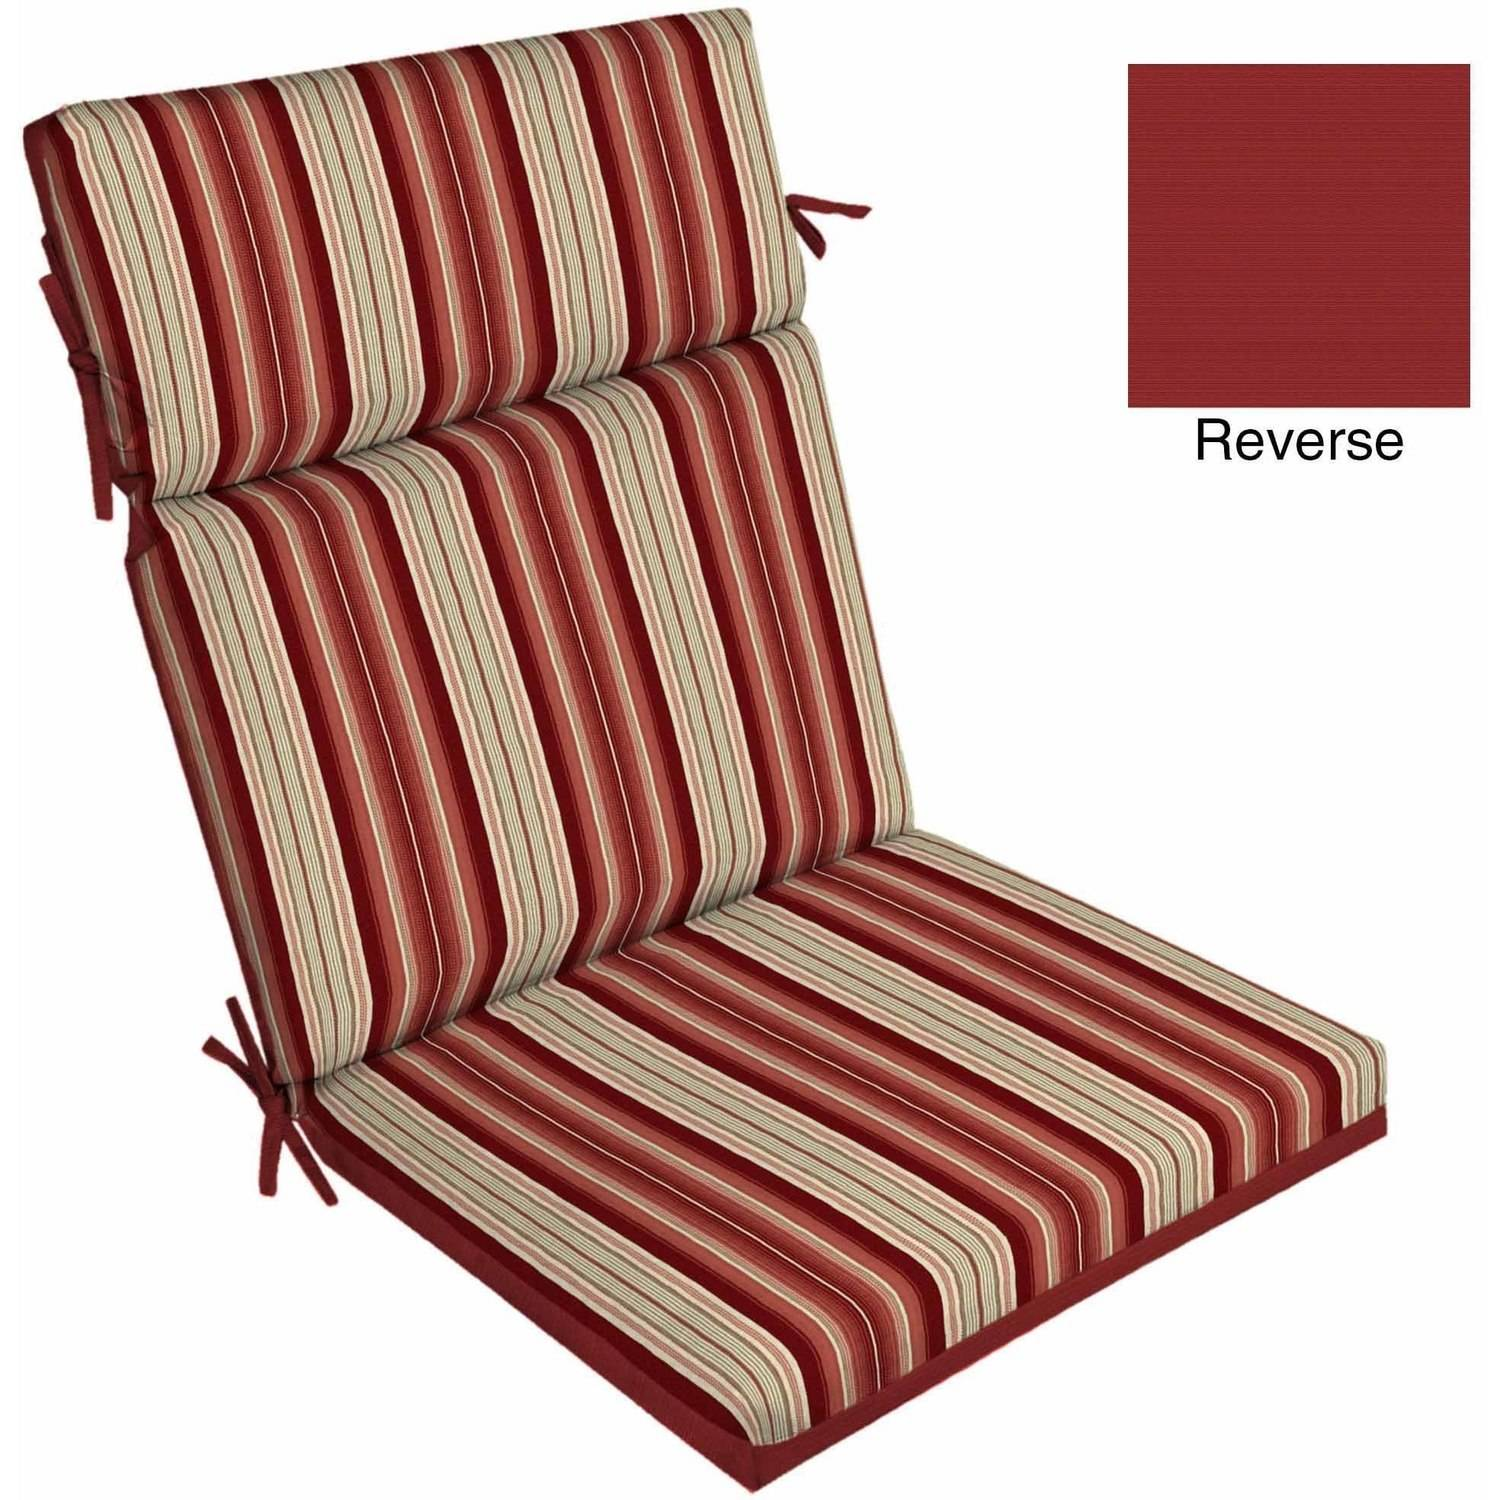 outdoor furniture cushions better homes and gardens outdoor patio reversible dining chair cushion ZSUQWCU